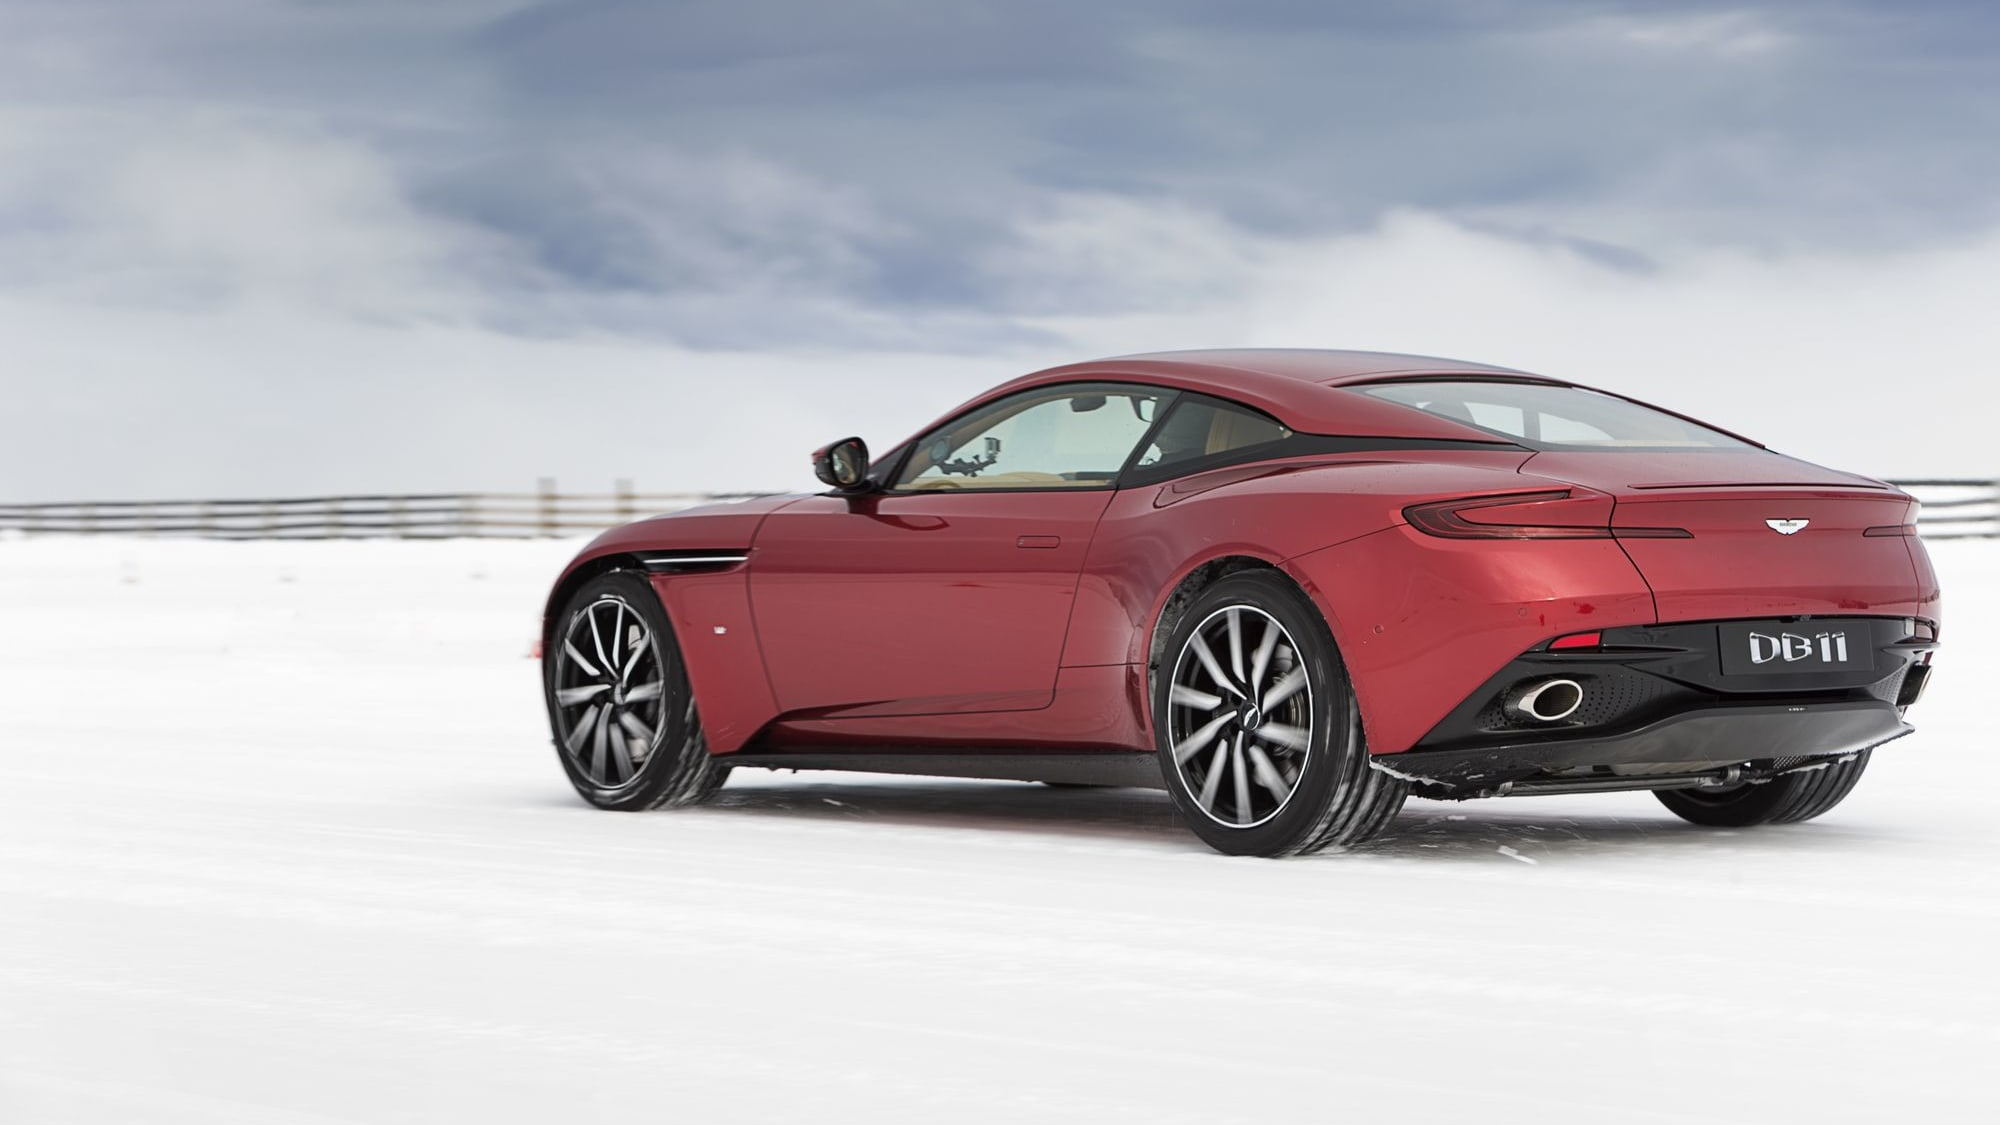 New Aston Martin Cars Aston Martin Nottingham - Aston martin cars com